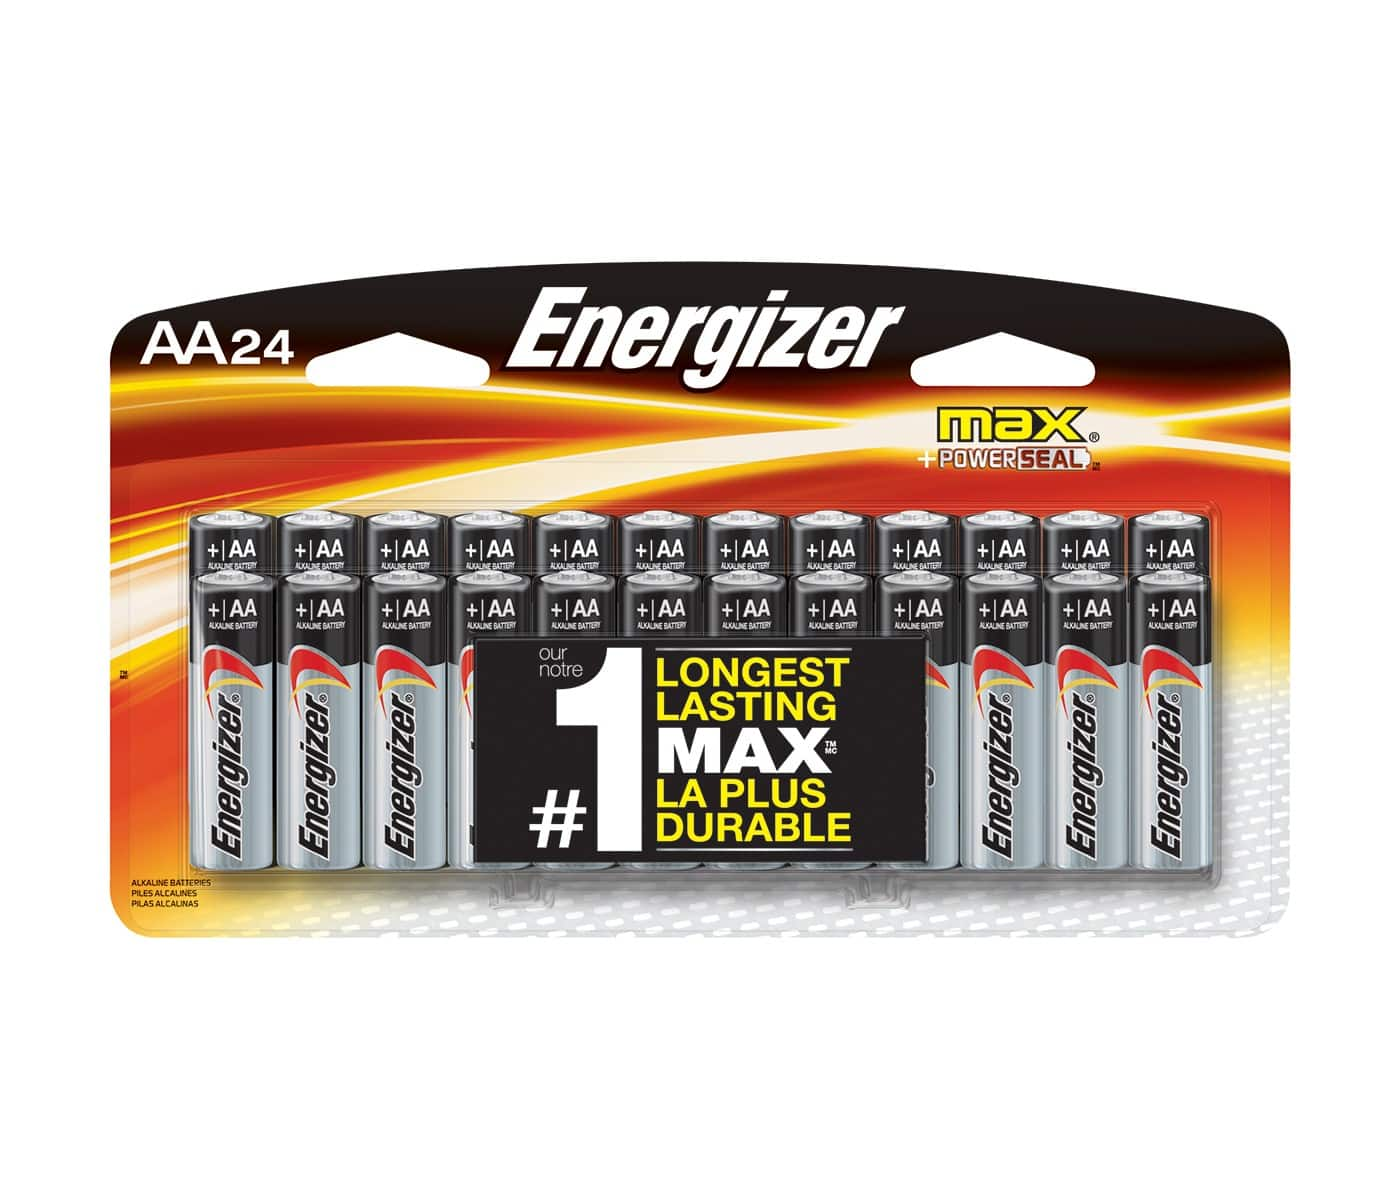 Energizer Max 24 pack of AA batteries - as low as $4.18 in store @ Target B&M YMMV